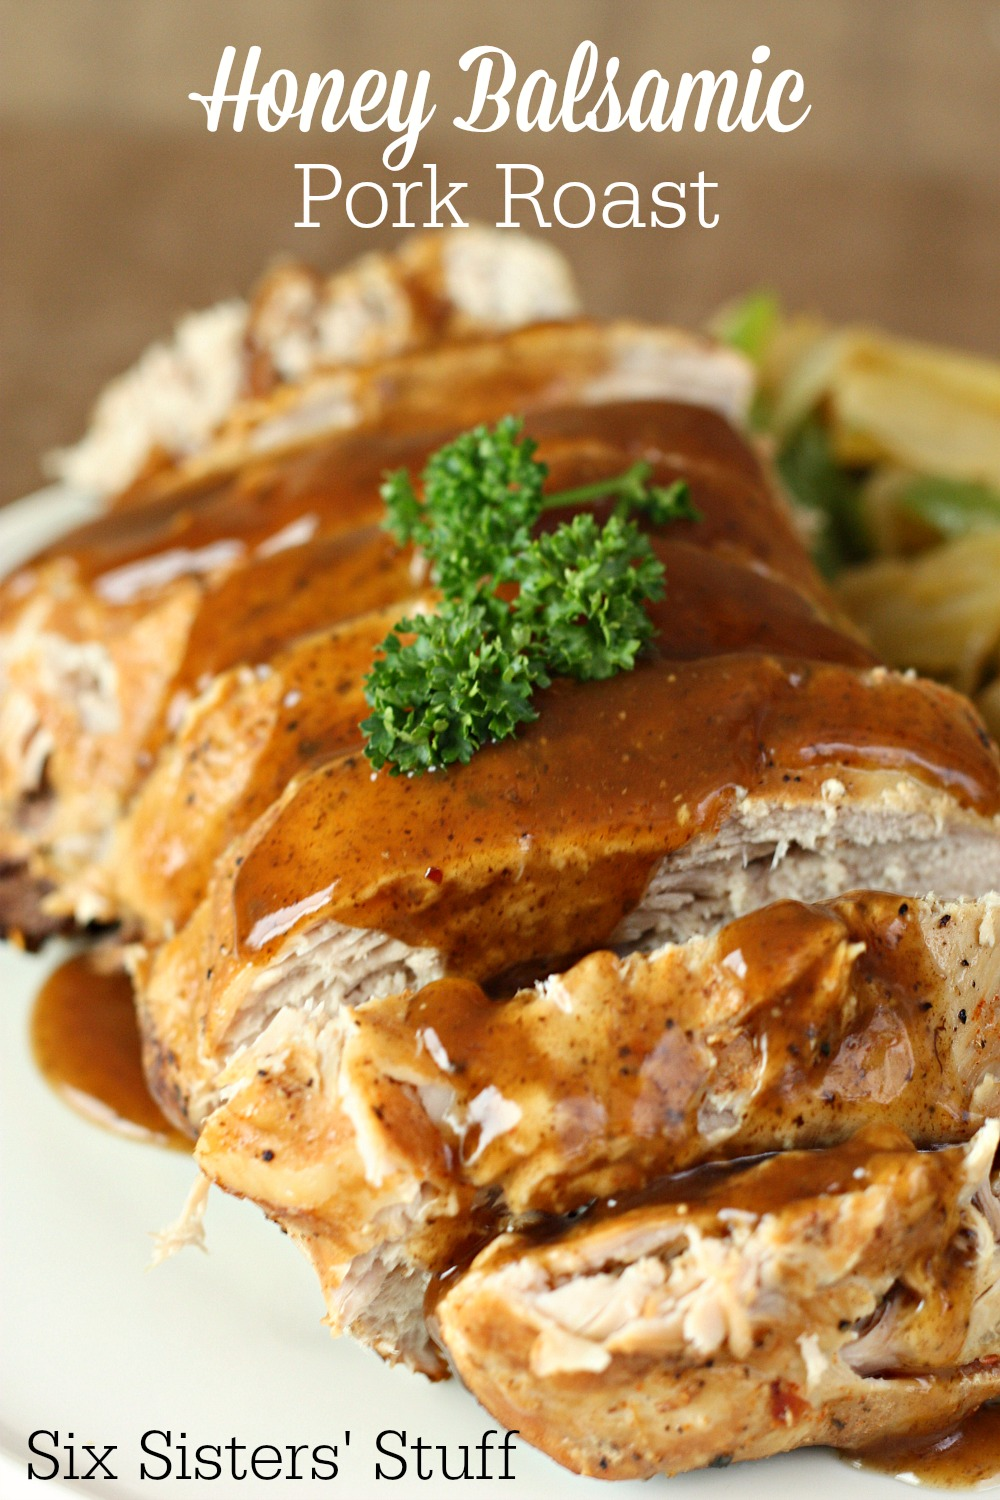 Slow-Cooker-Honey-Balsamic-Pork-Roast-Recipe.jpg